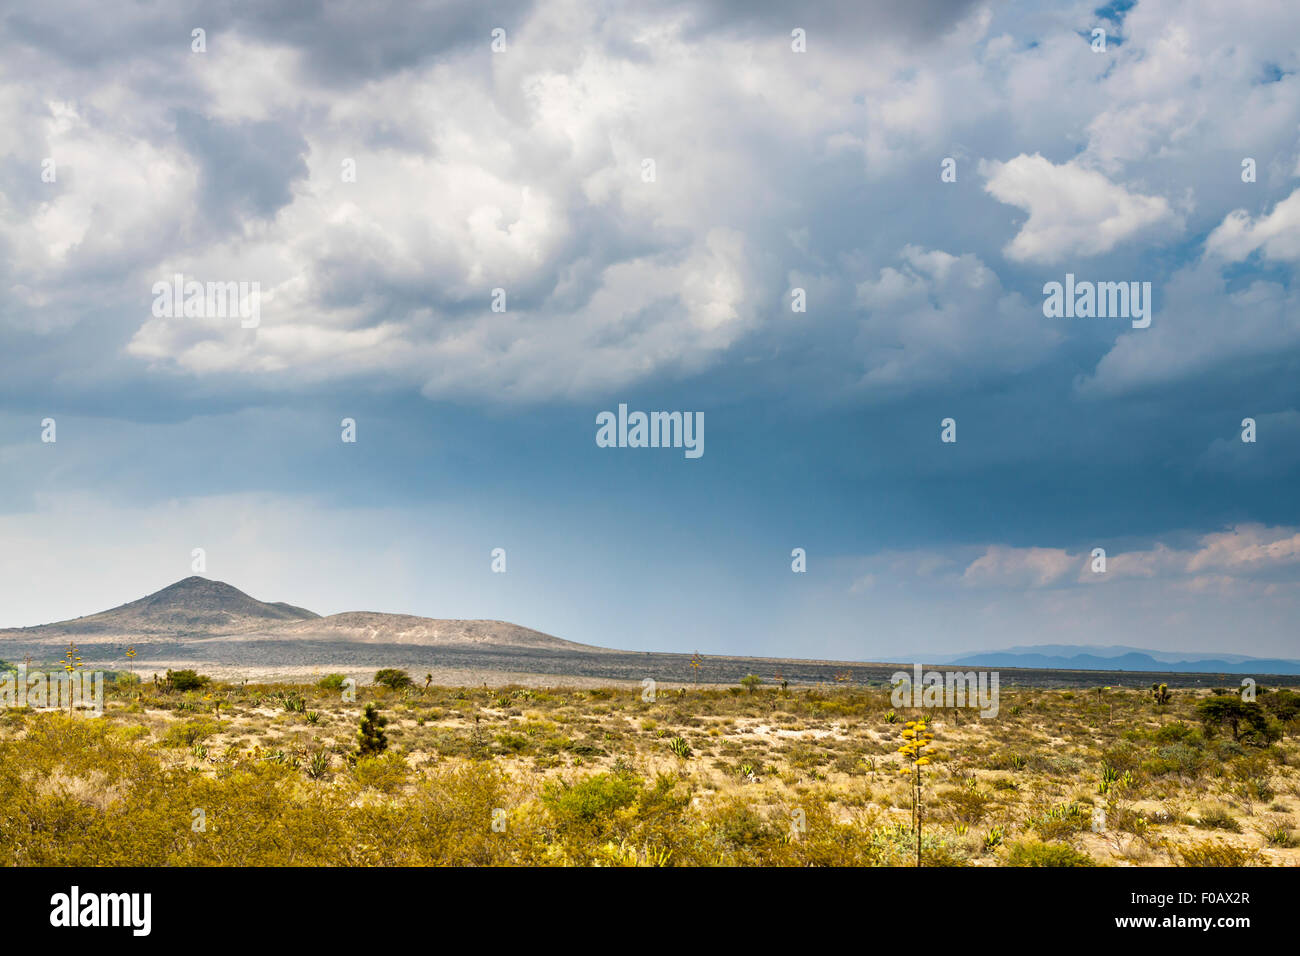 Mountain formation in north america at storm time. Zacatecas, ZAC. Mexico Stock Photo